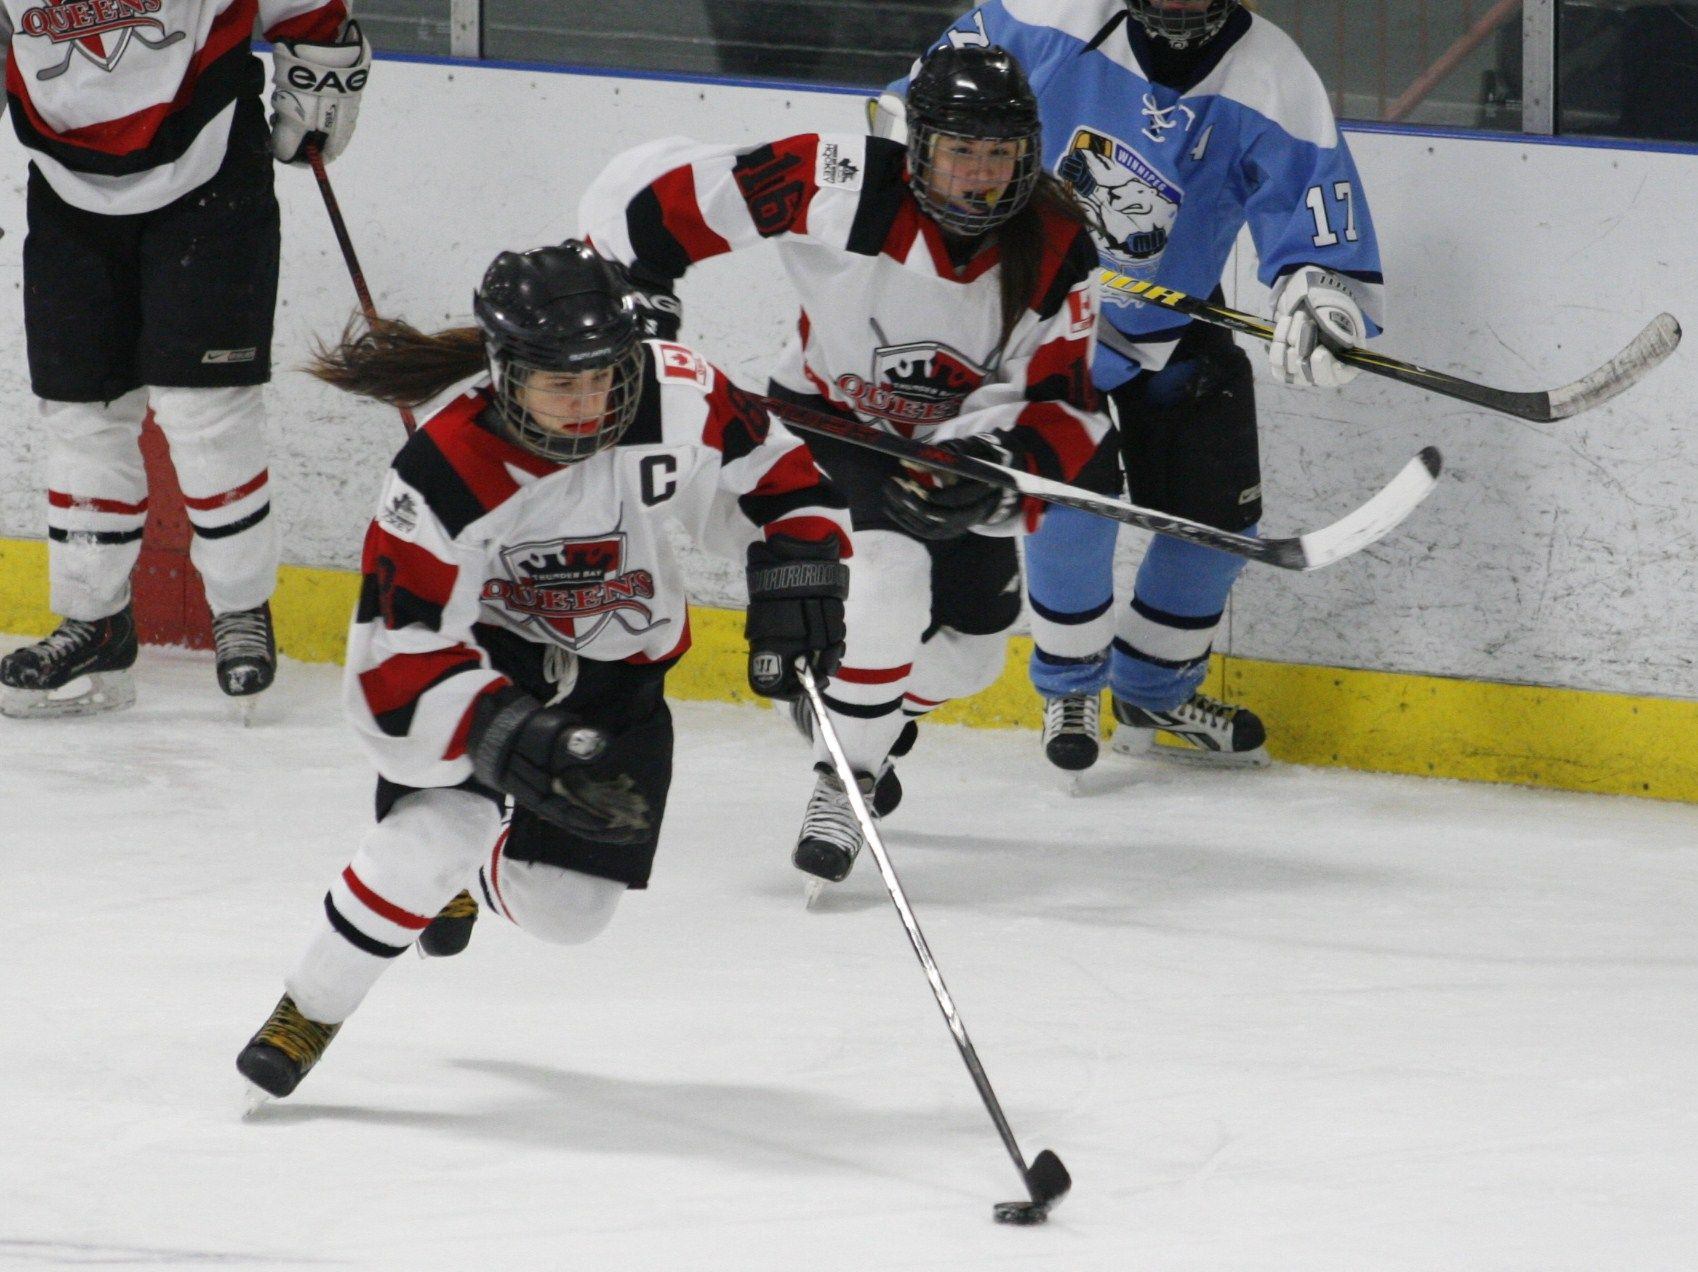 Ontario midget hockey player ratings